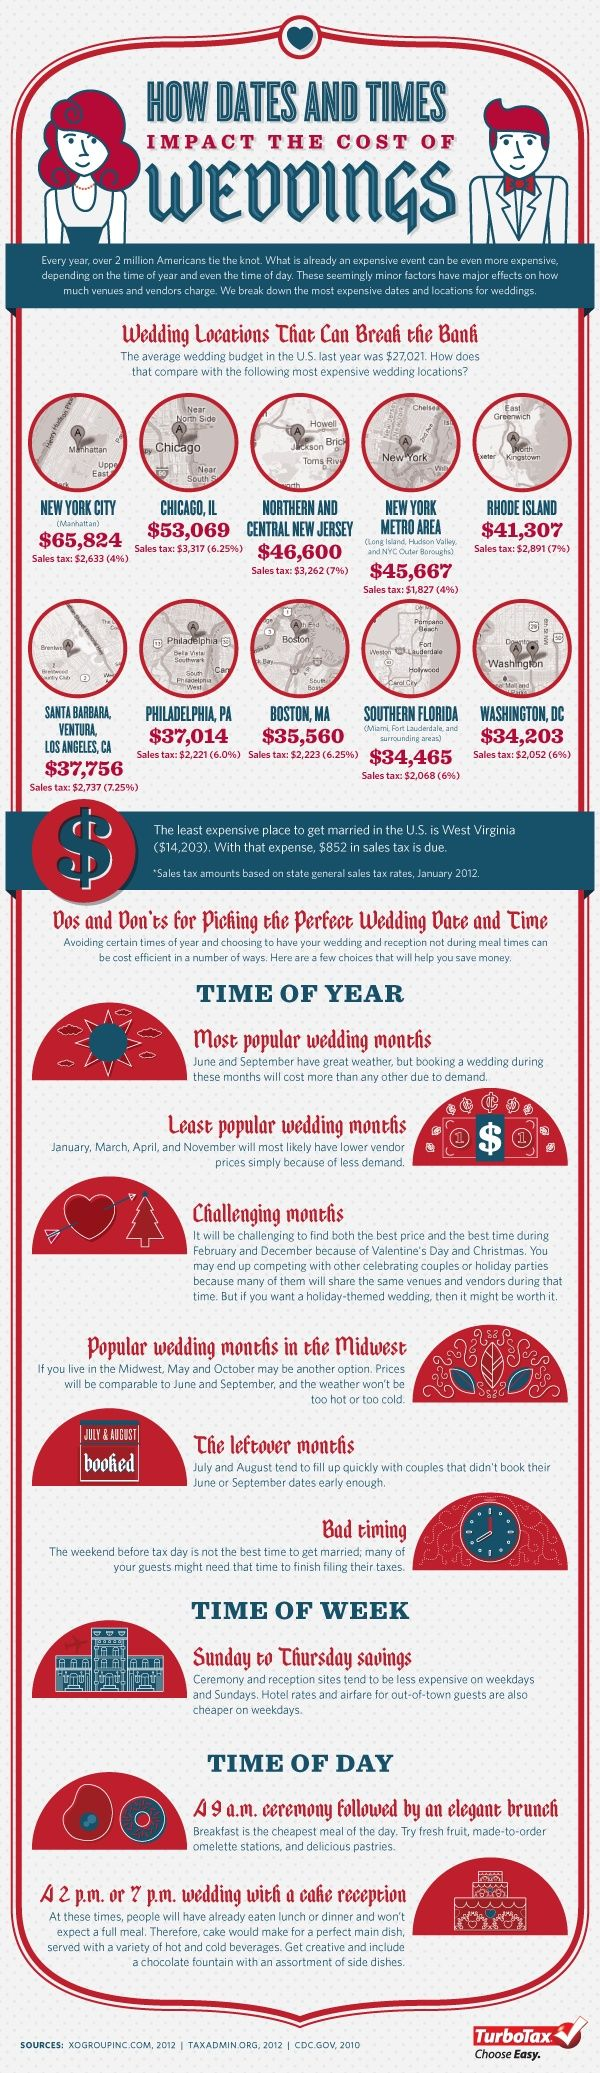 how dates and times impact wedding costs